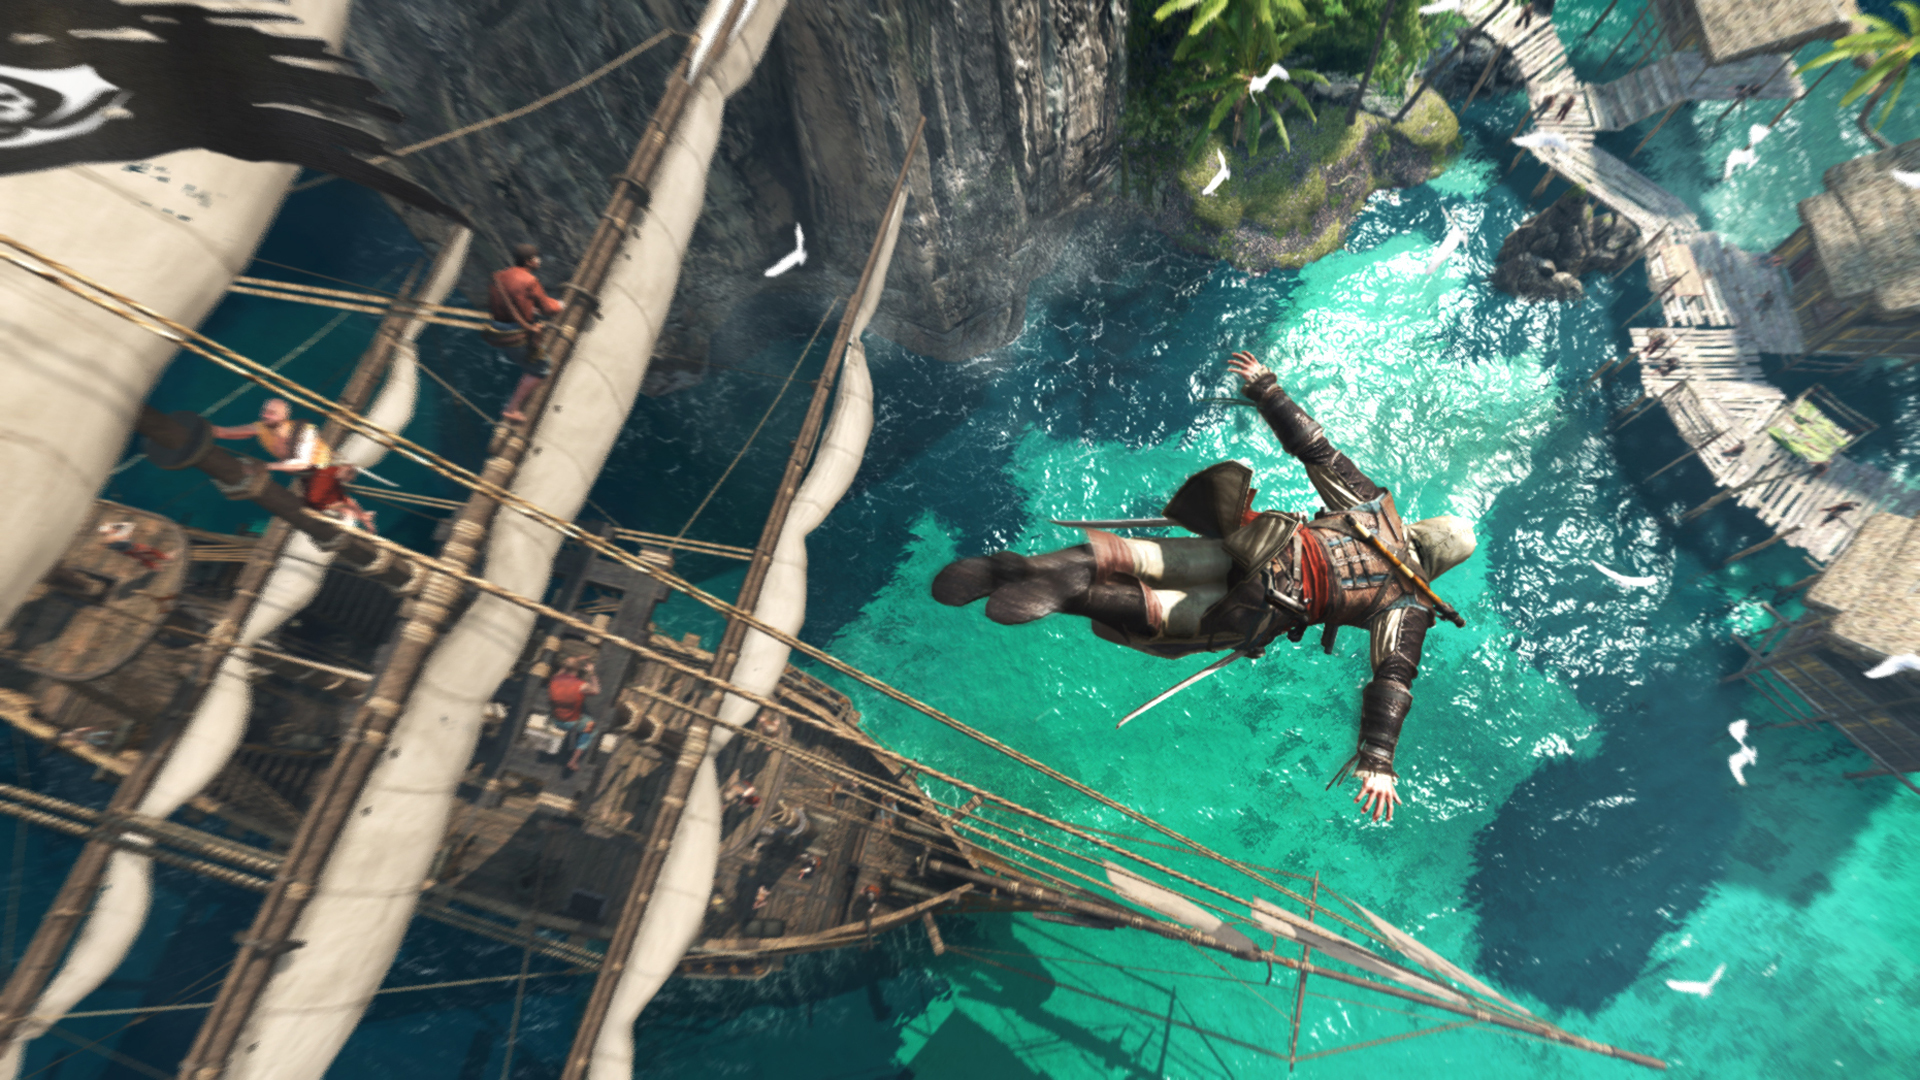 Assassin's Creed IV: Black Flag for the PS4